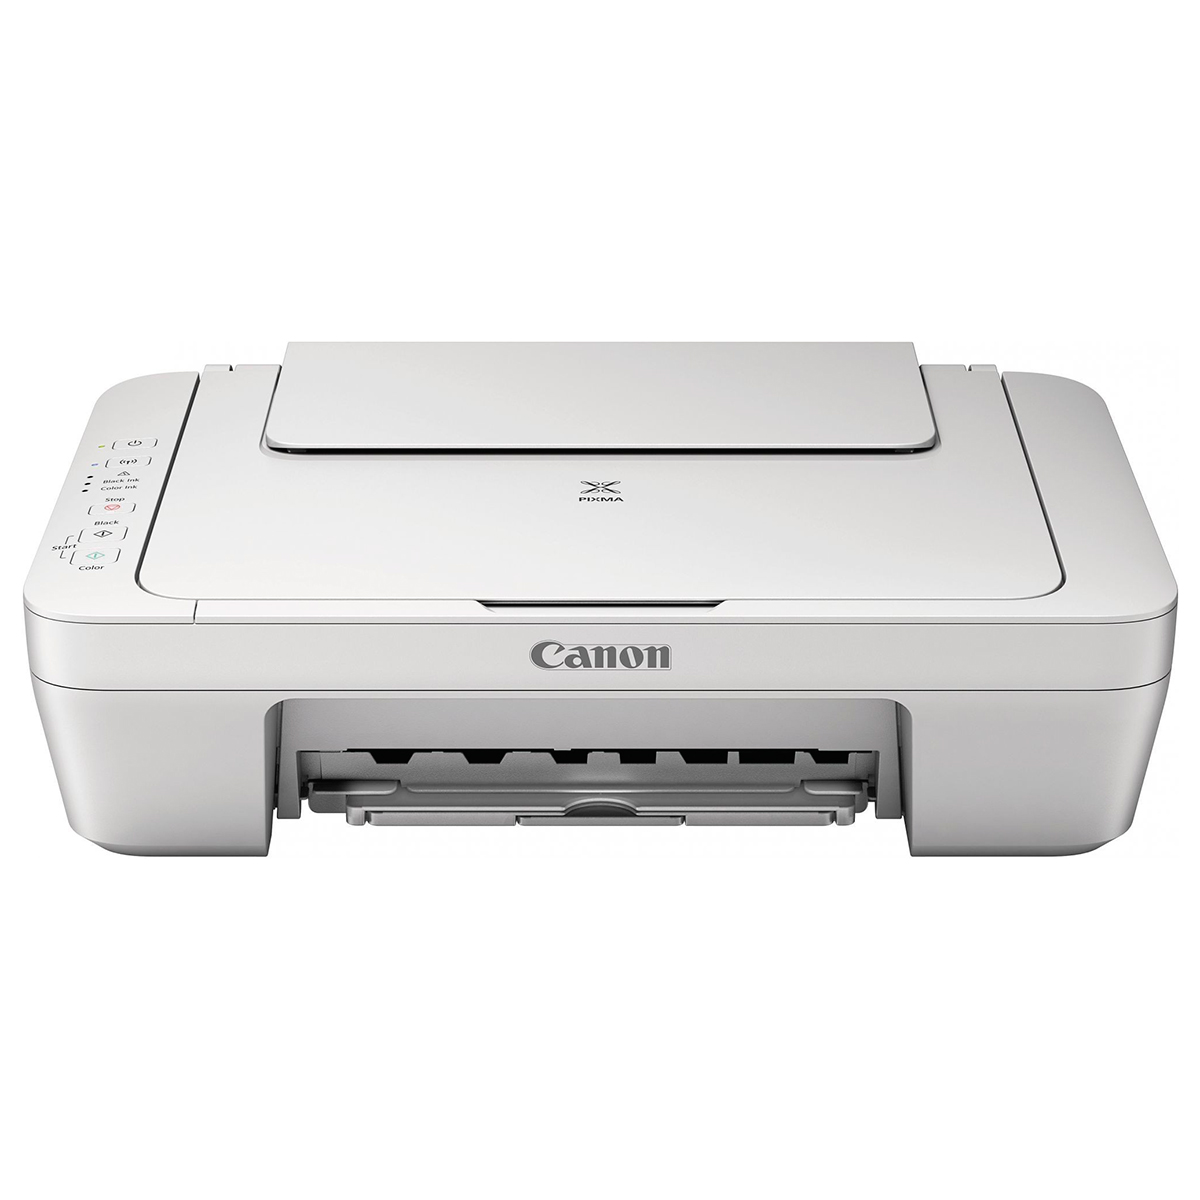 Canon All In One Canon Pixma Mg2950 Printer Review Good Housekeeping